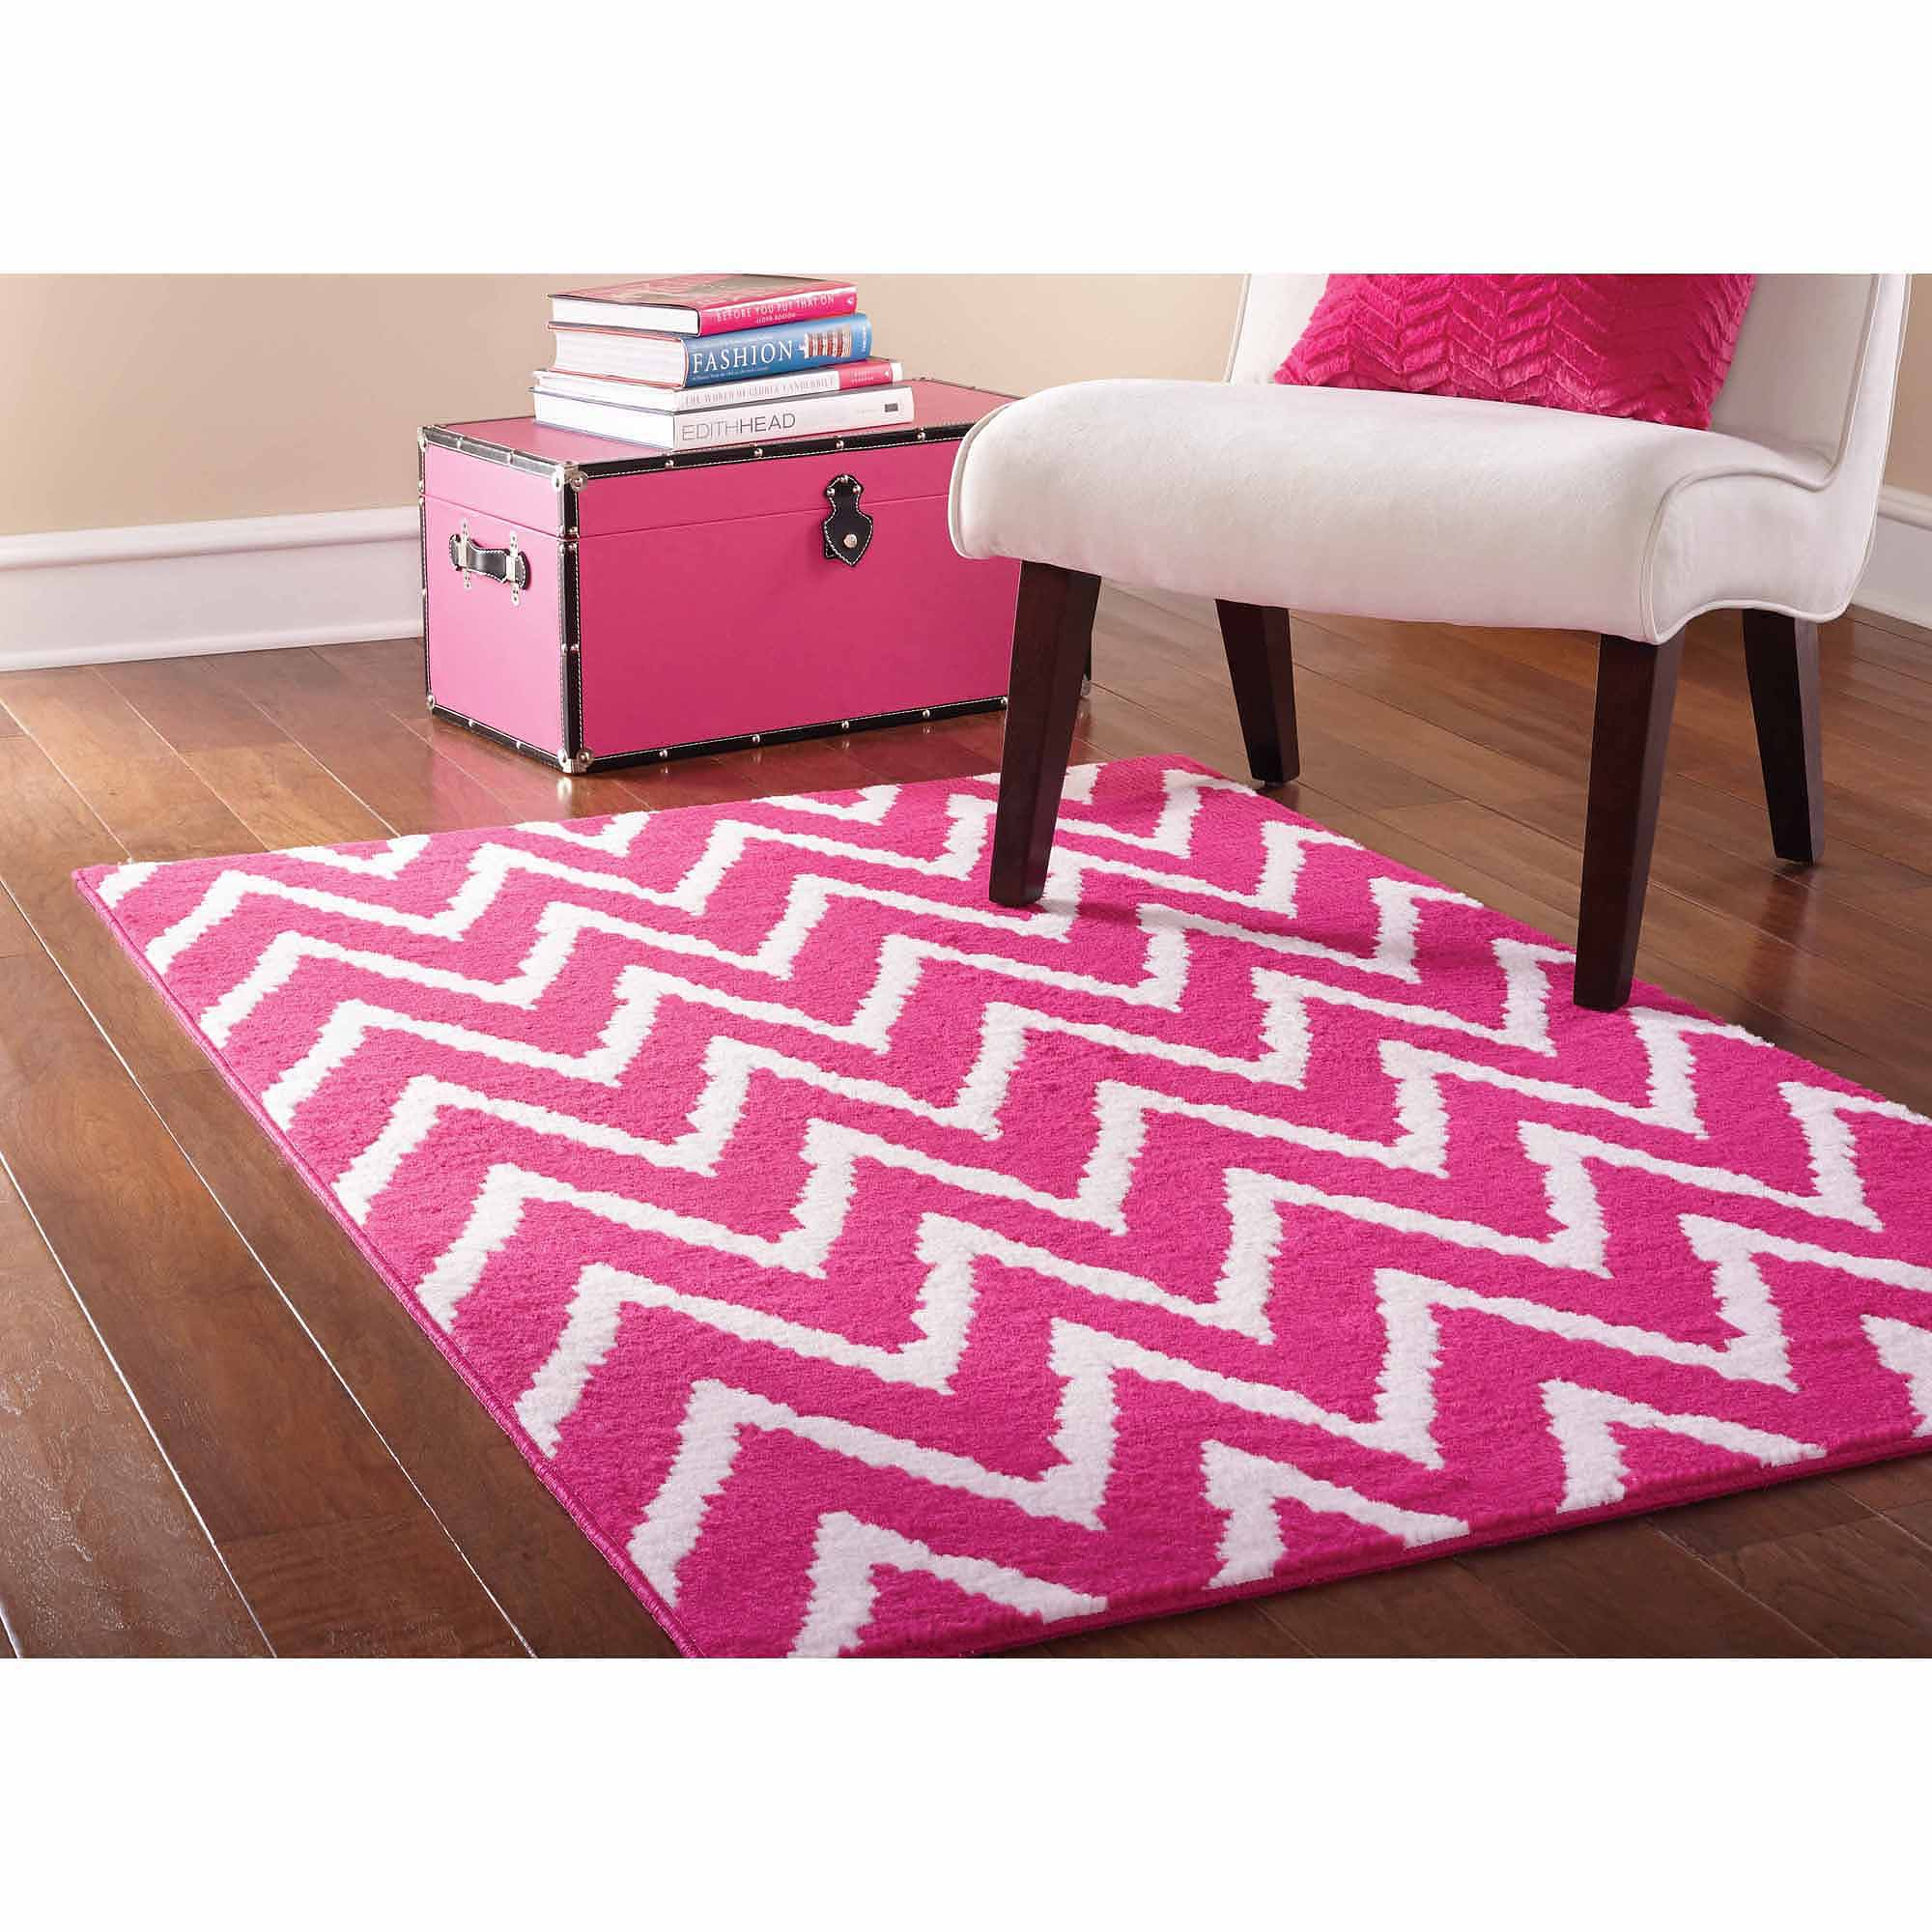 Kids Girls Pink Rug For Bedroom Playroom Girl Room Modern